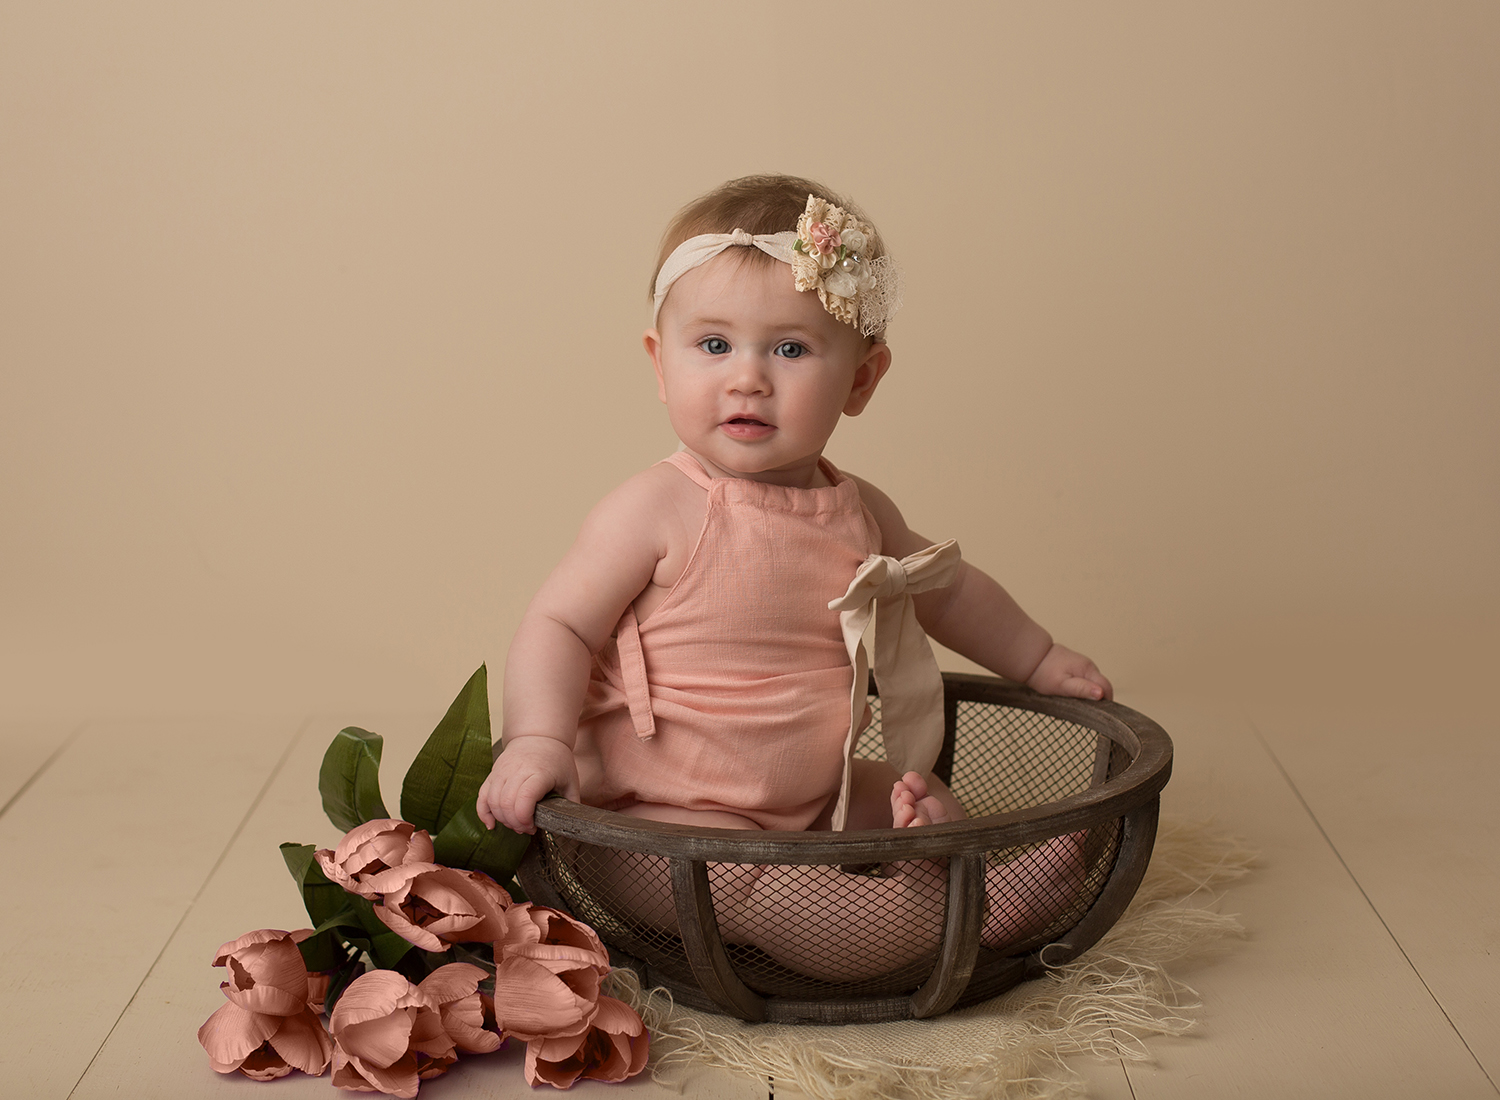 johnson county baby photographer, overland park kansas portrait studio, kansas city baby, cute baby pictures, baby girl in bowl